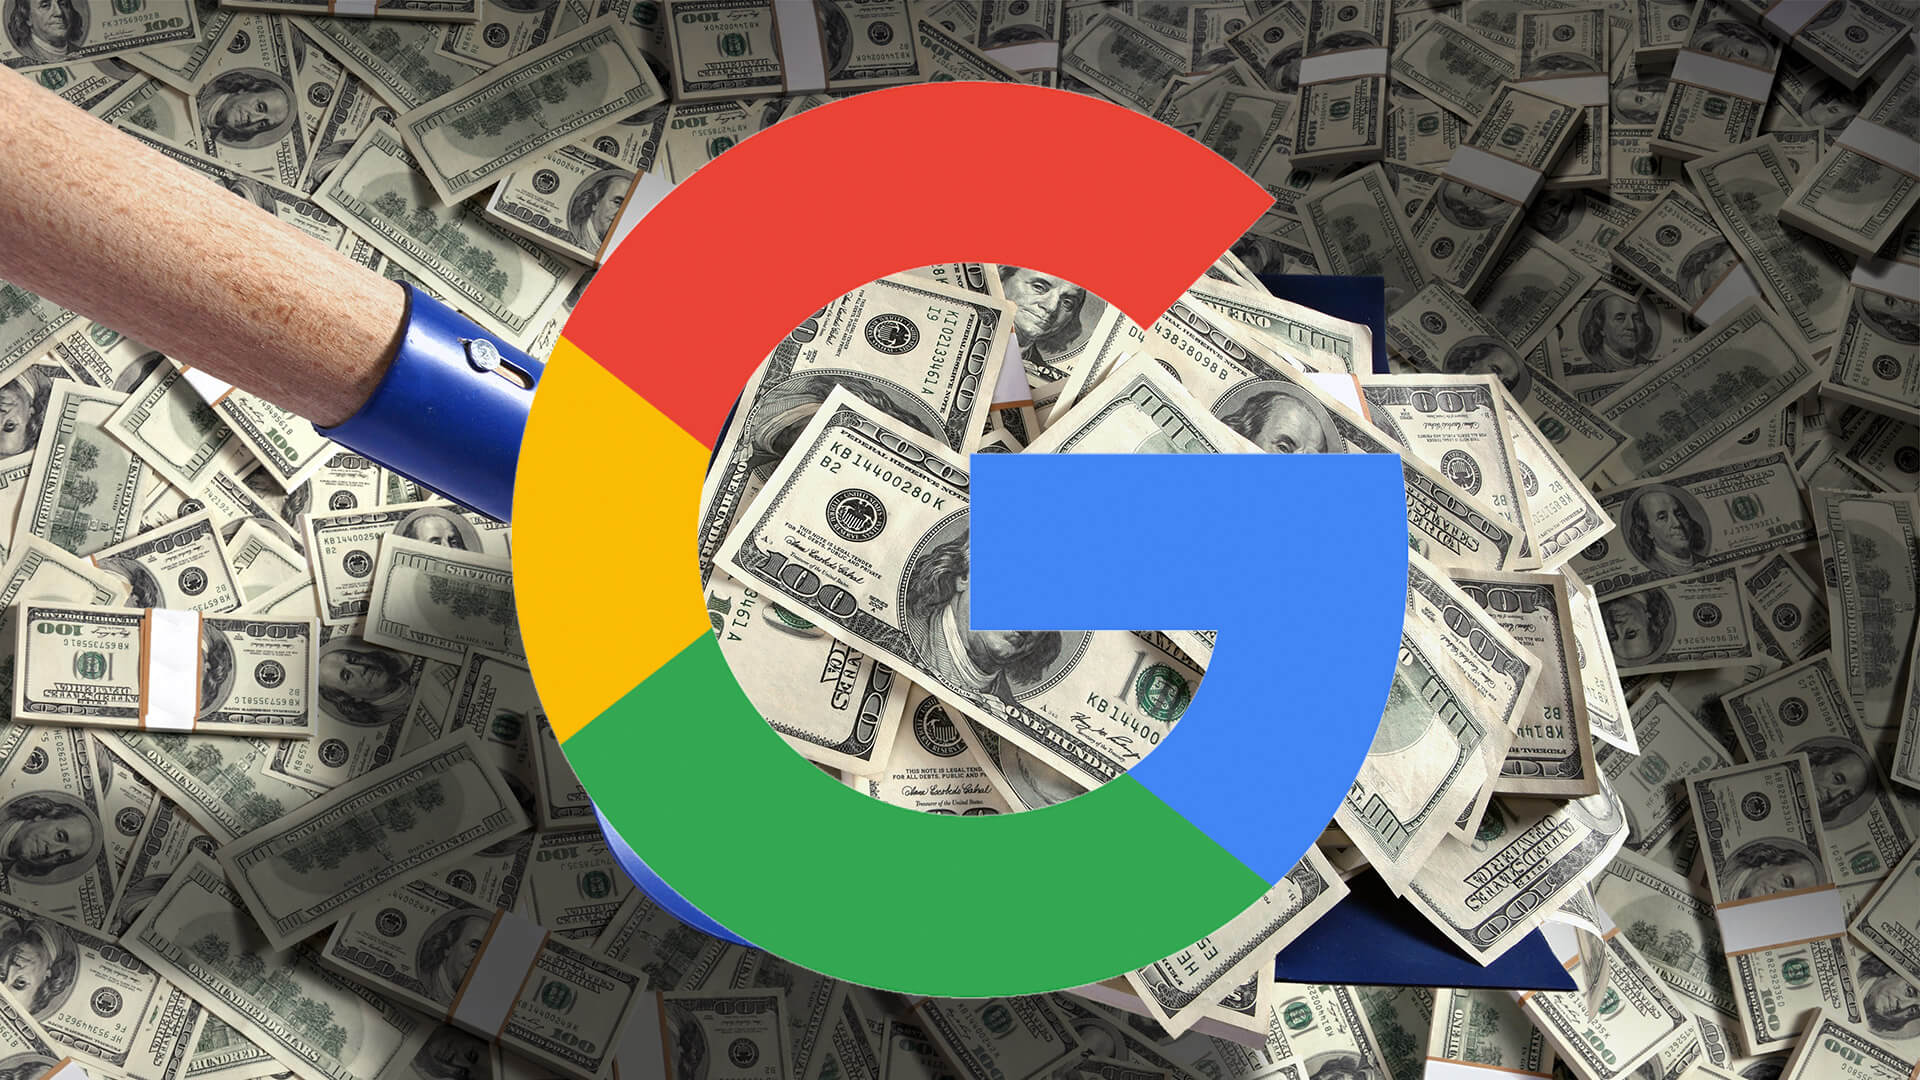 google-money.jpg (328.29 Kb)